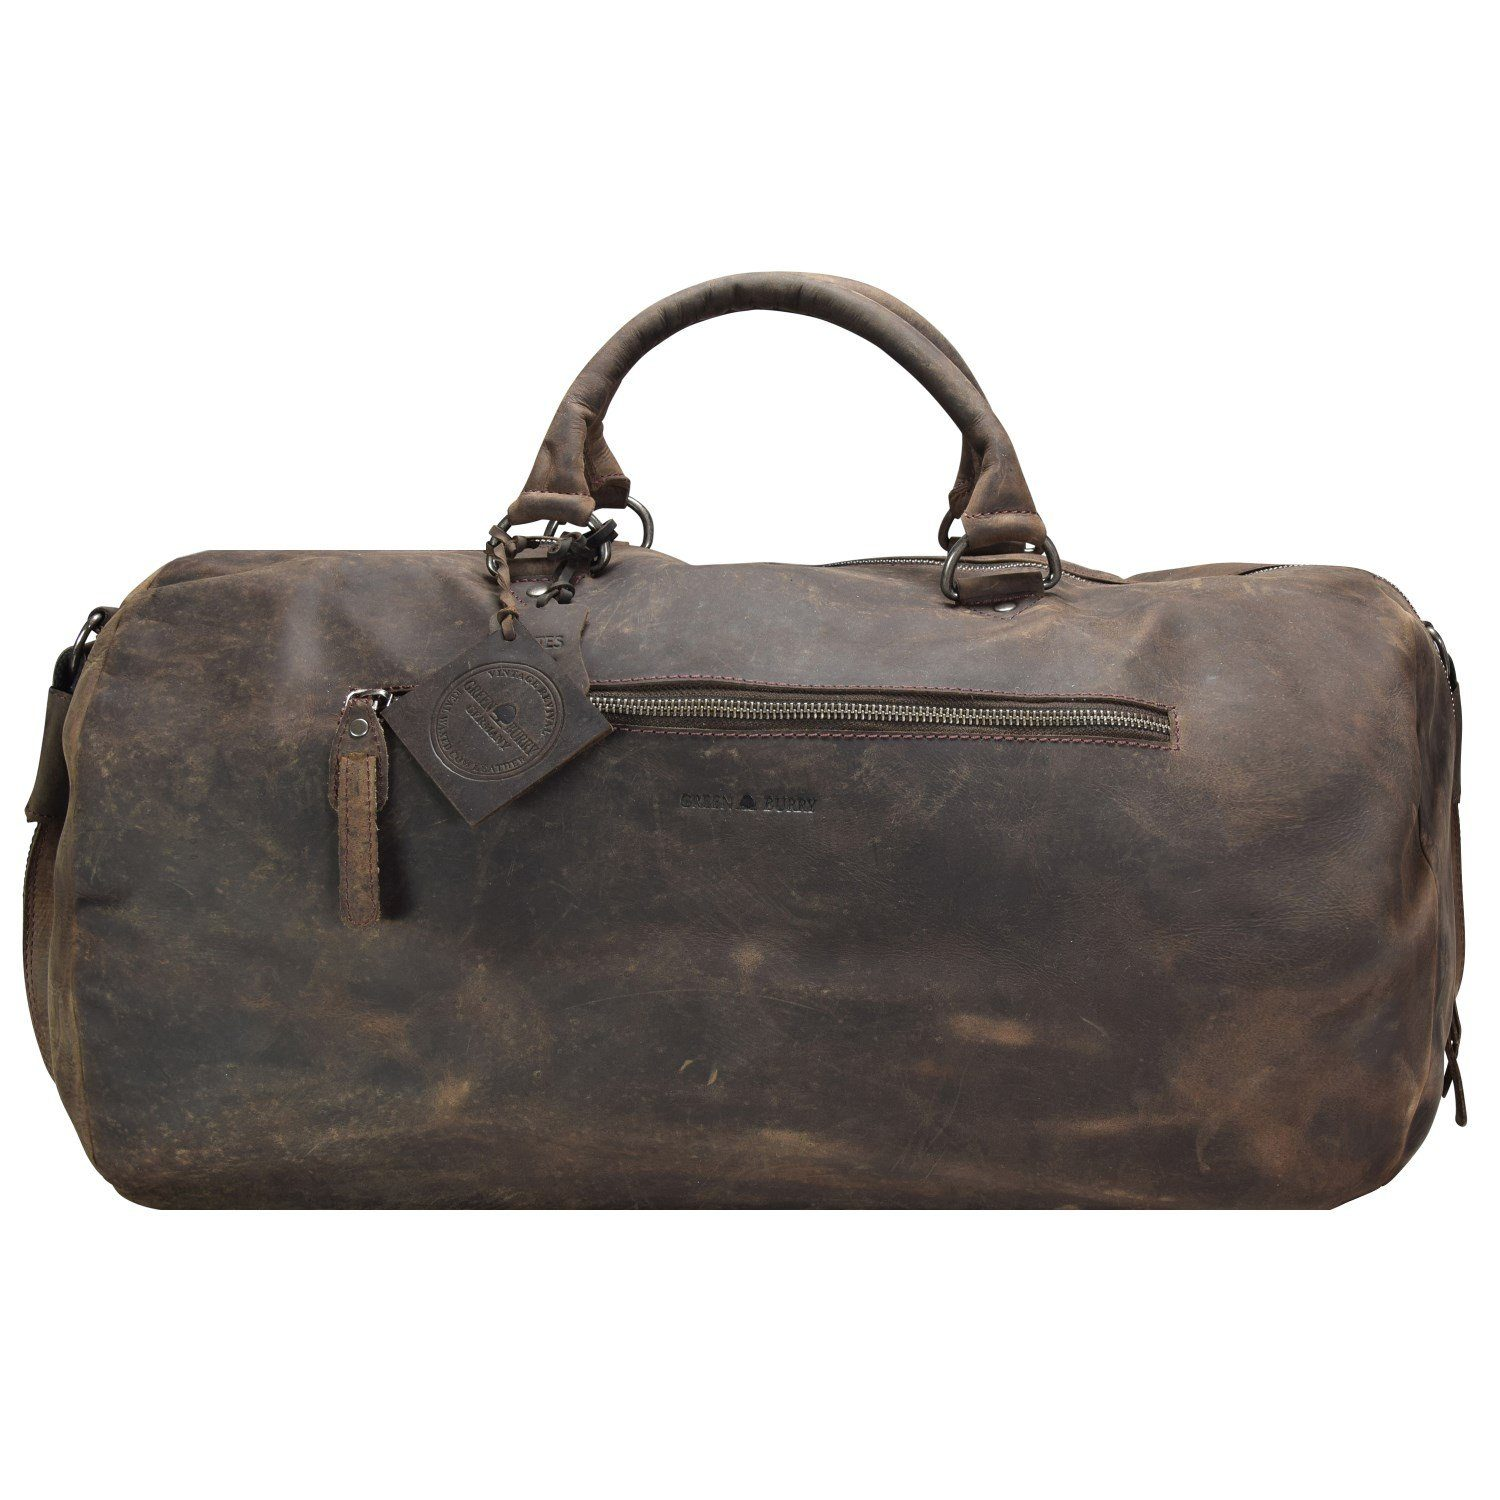 Greenburry Vintage Revival Vol. 2 Reisetasche Leder 52 cm